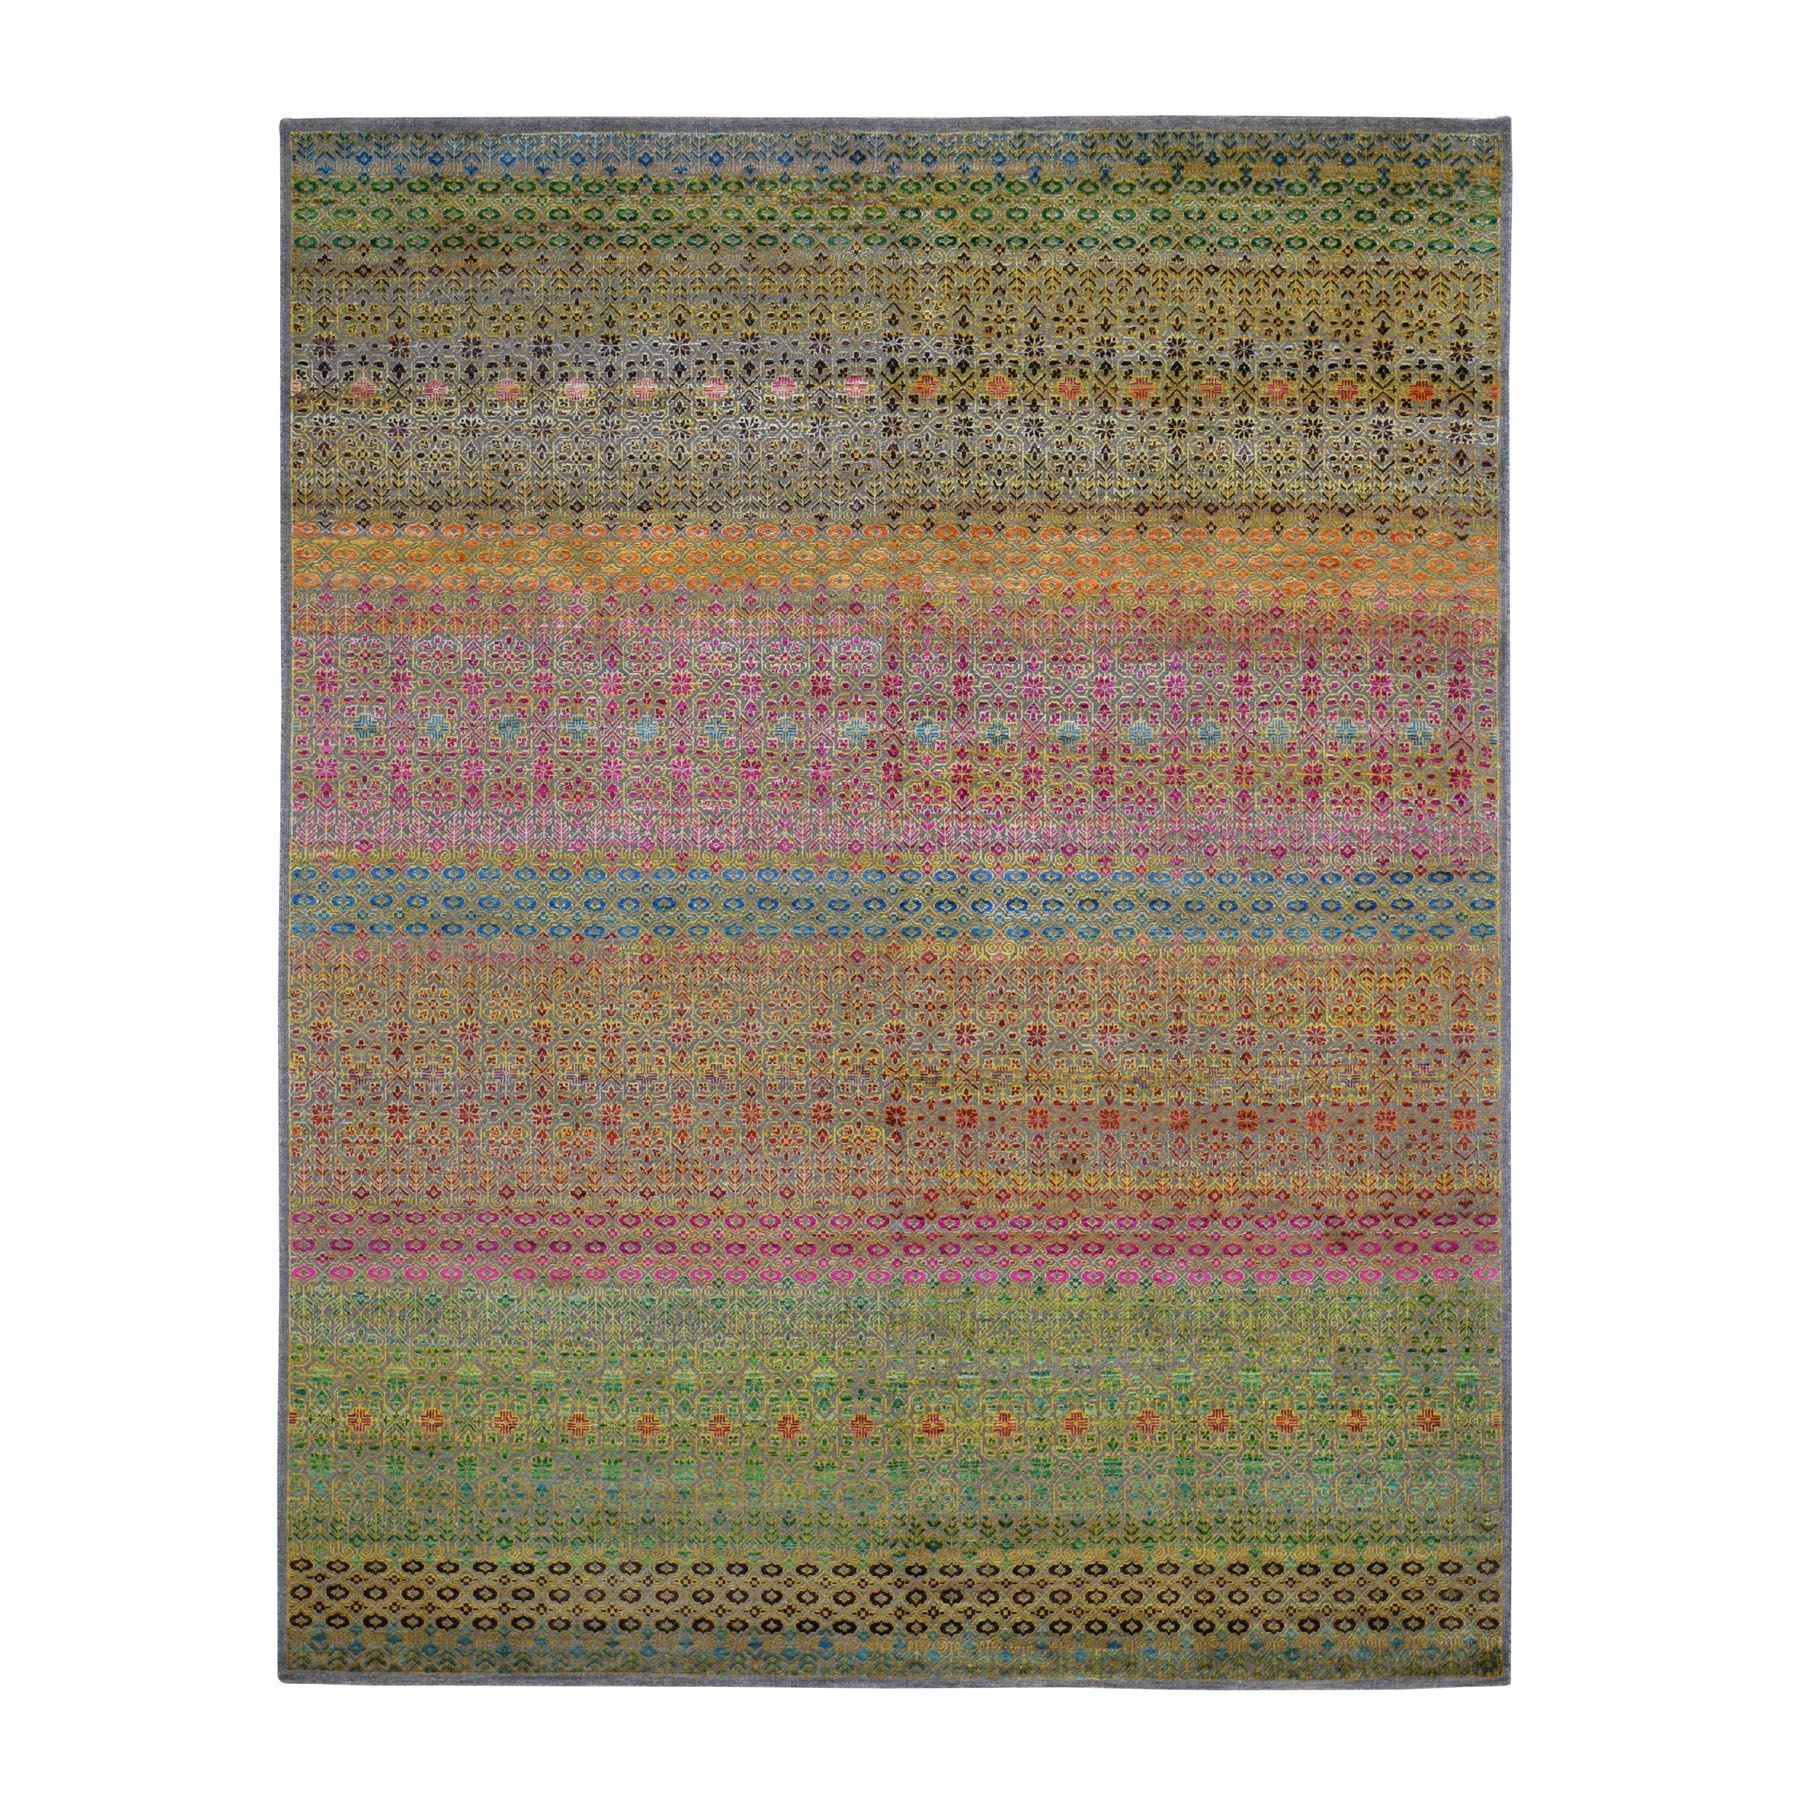 8'X10' Colorful Grass Design Sari Silk Textured Wool Modern Hand Knotted Oriental Rug moad7e78